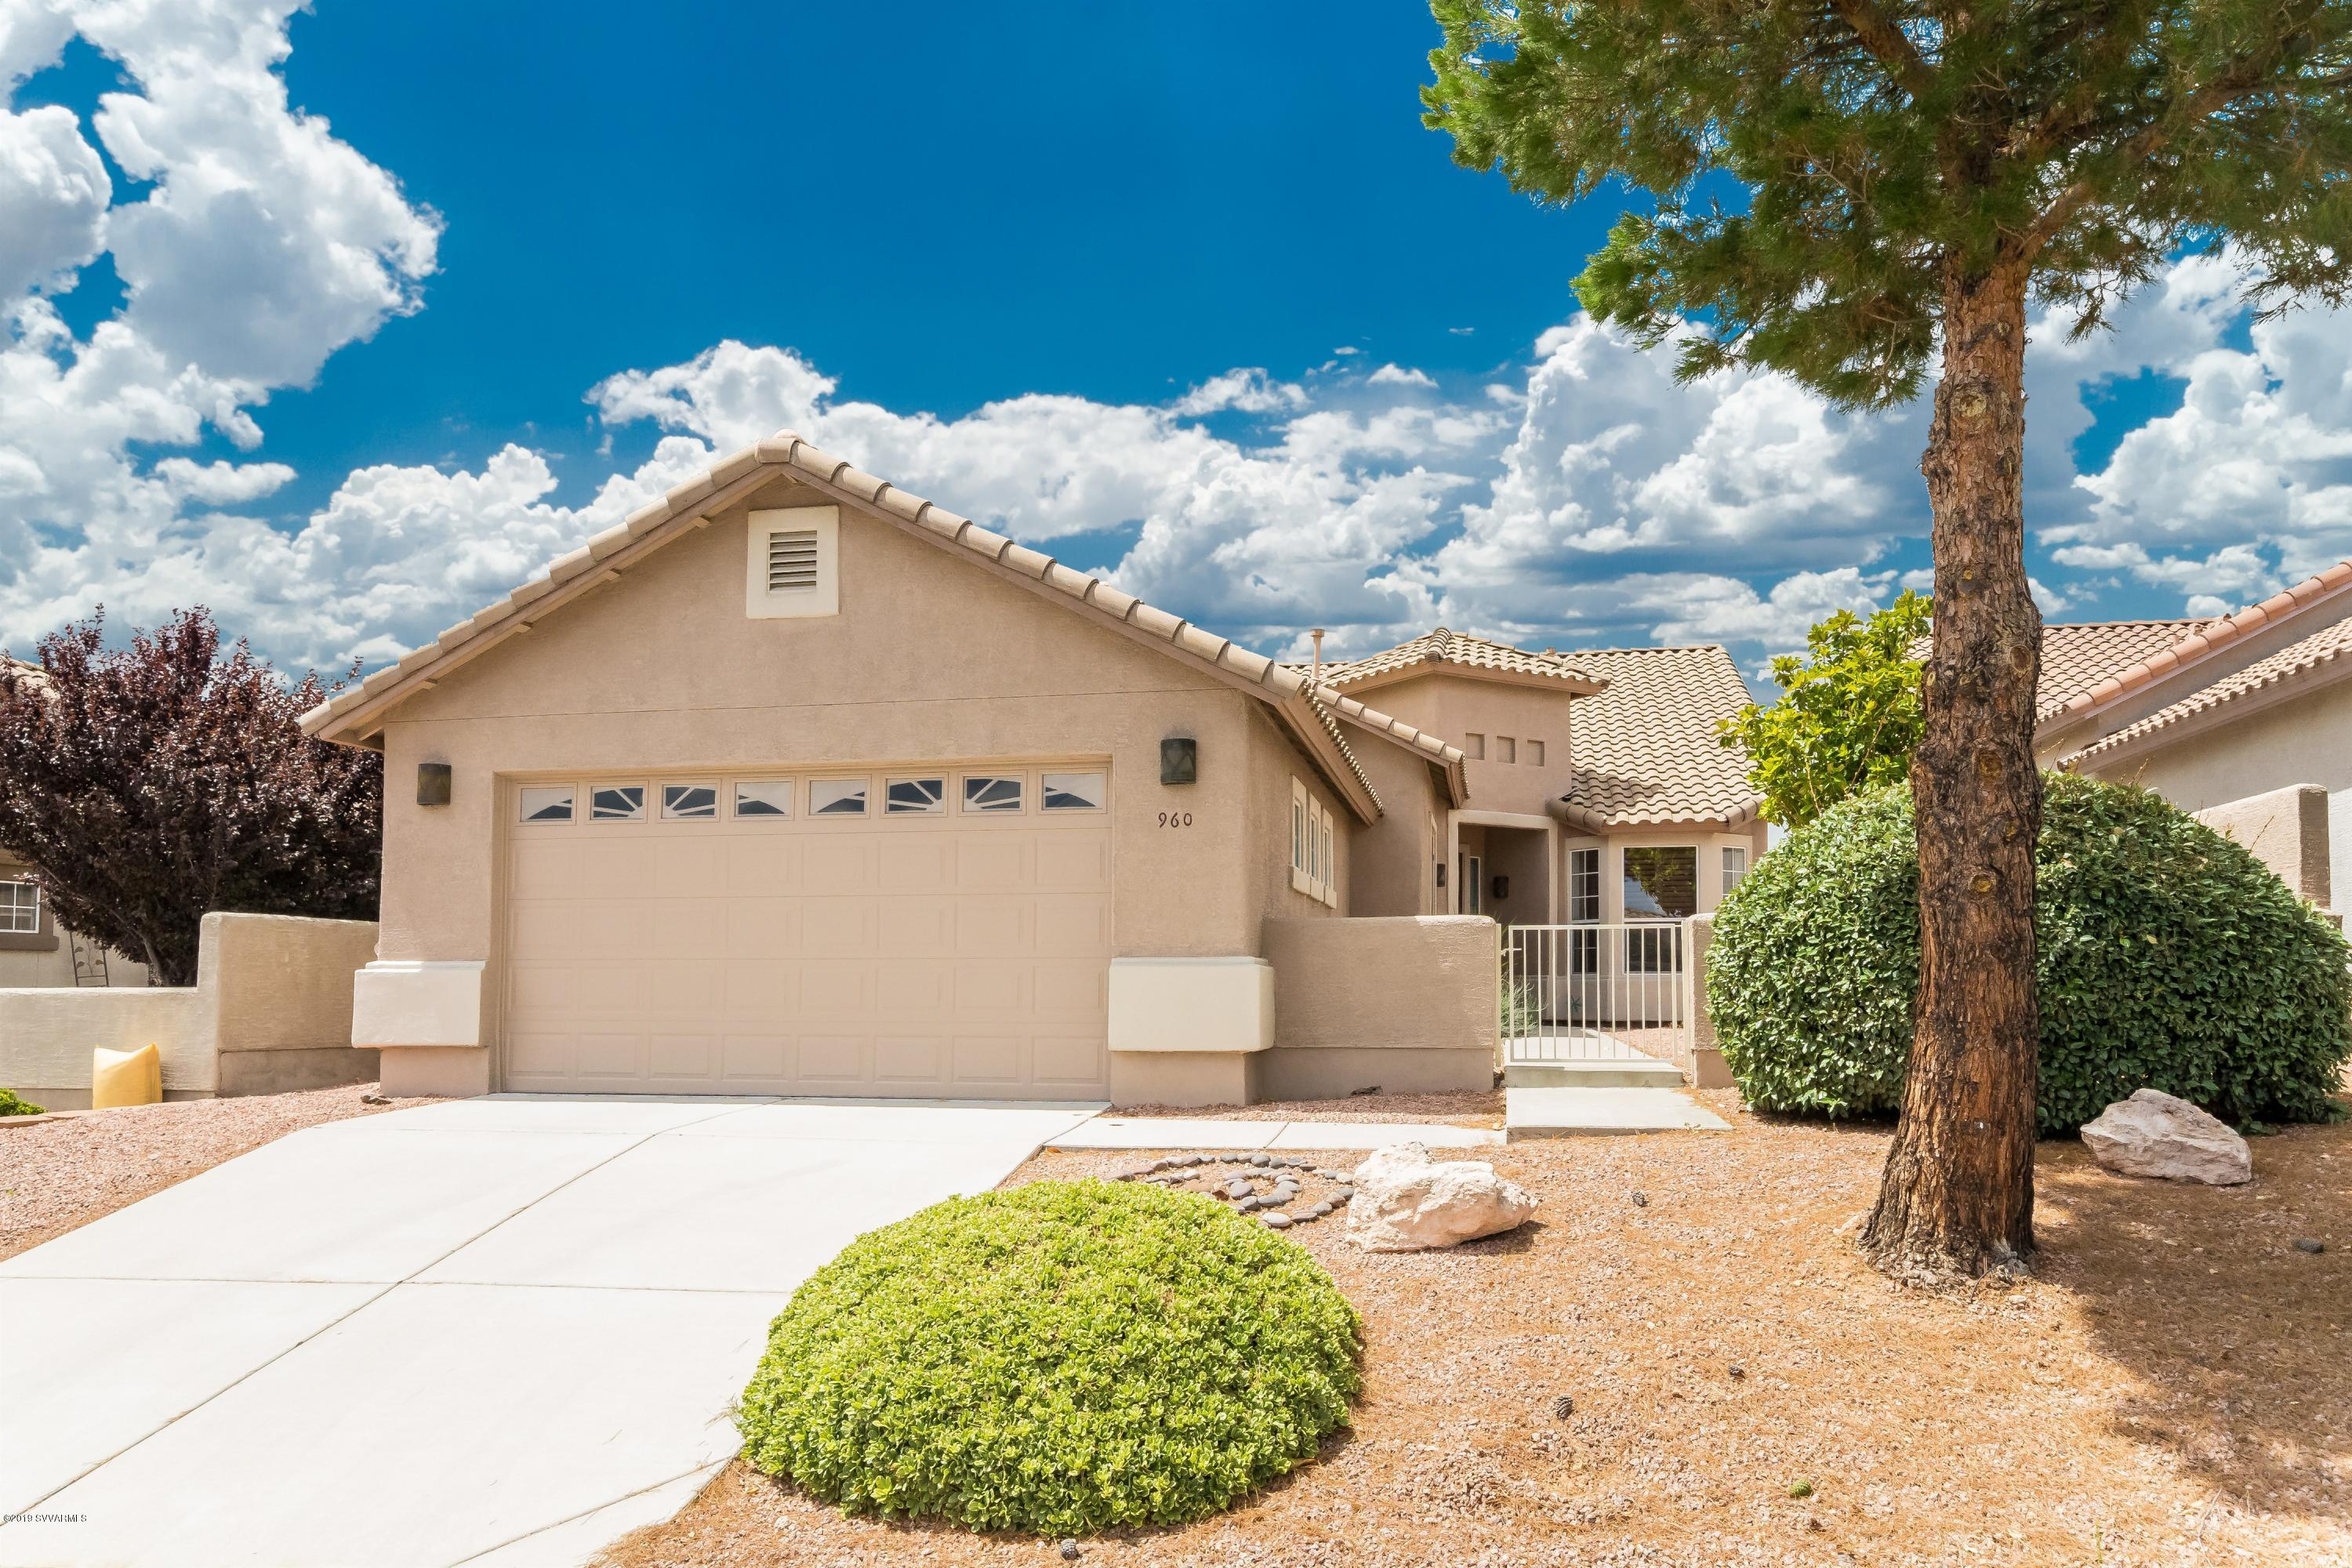 960 S Golf View Drive Cornville, AZ 86325